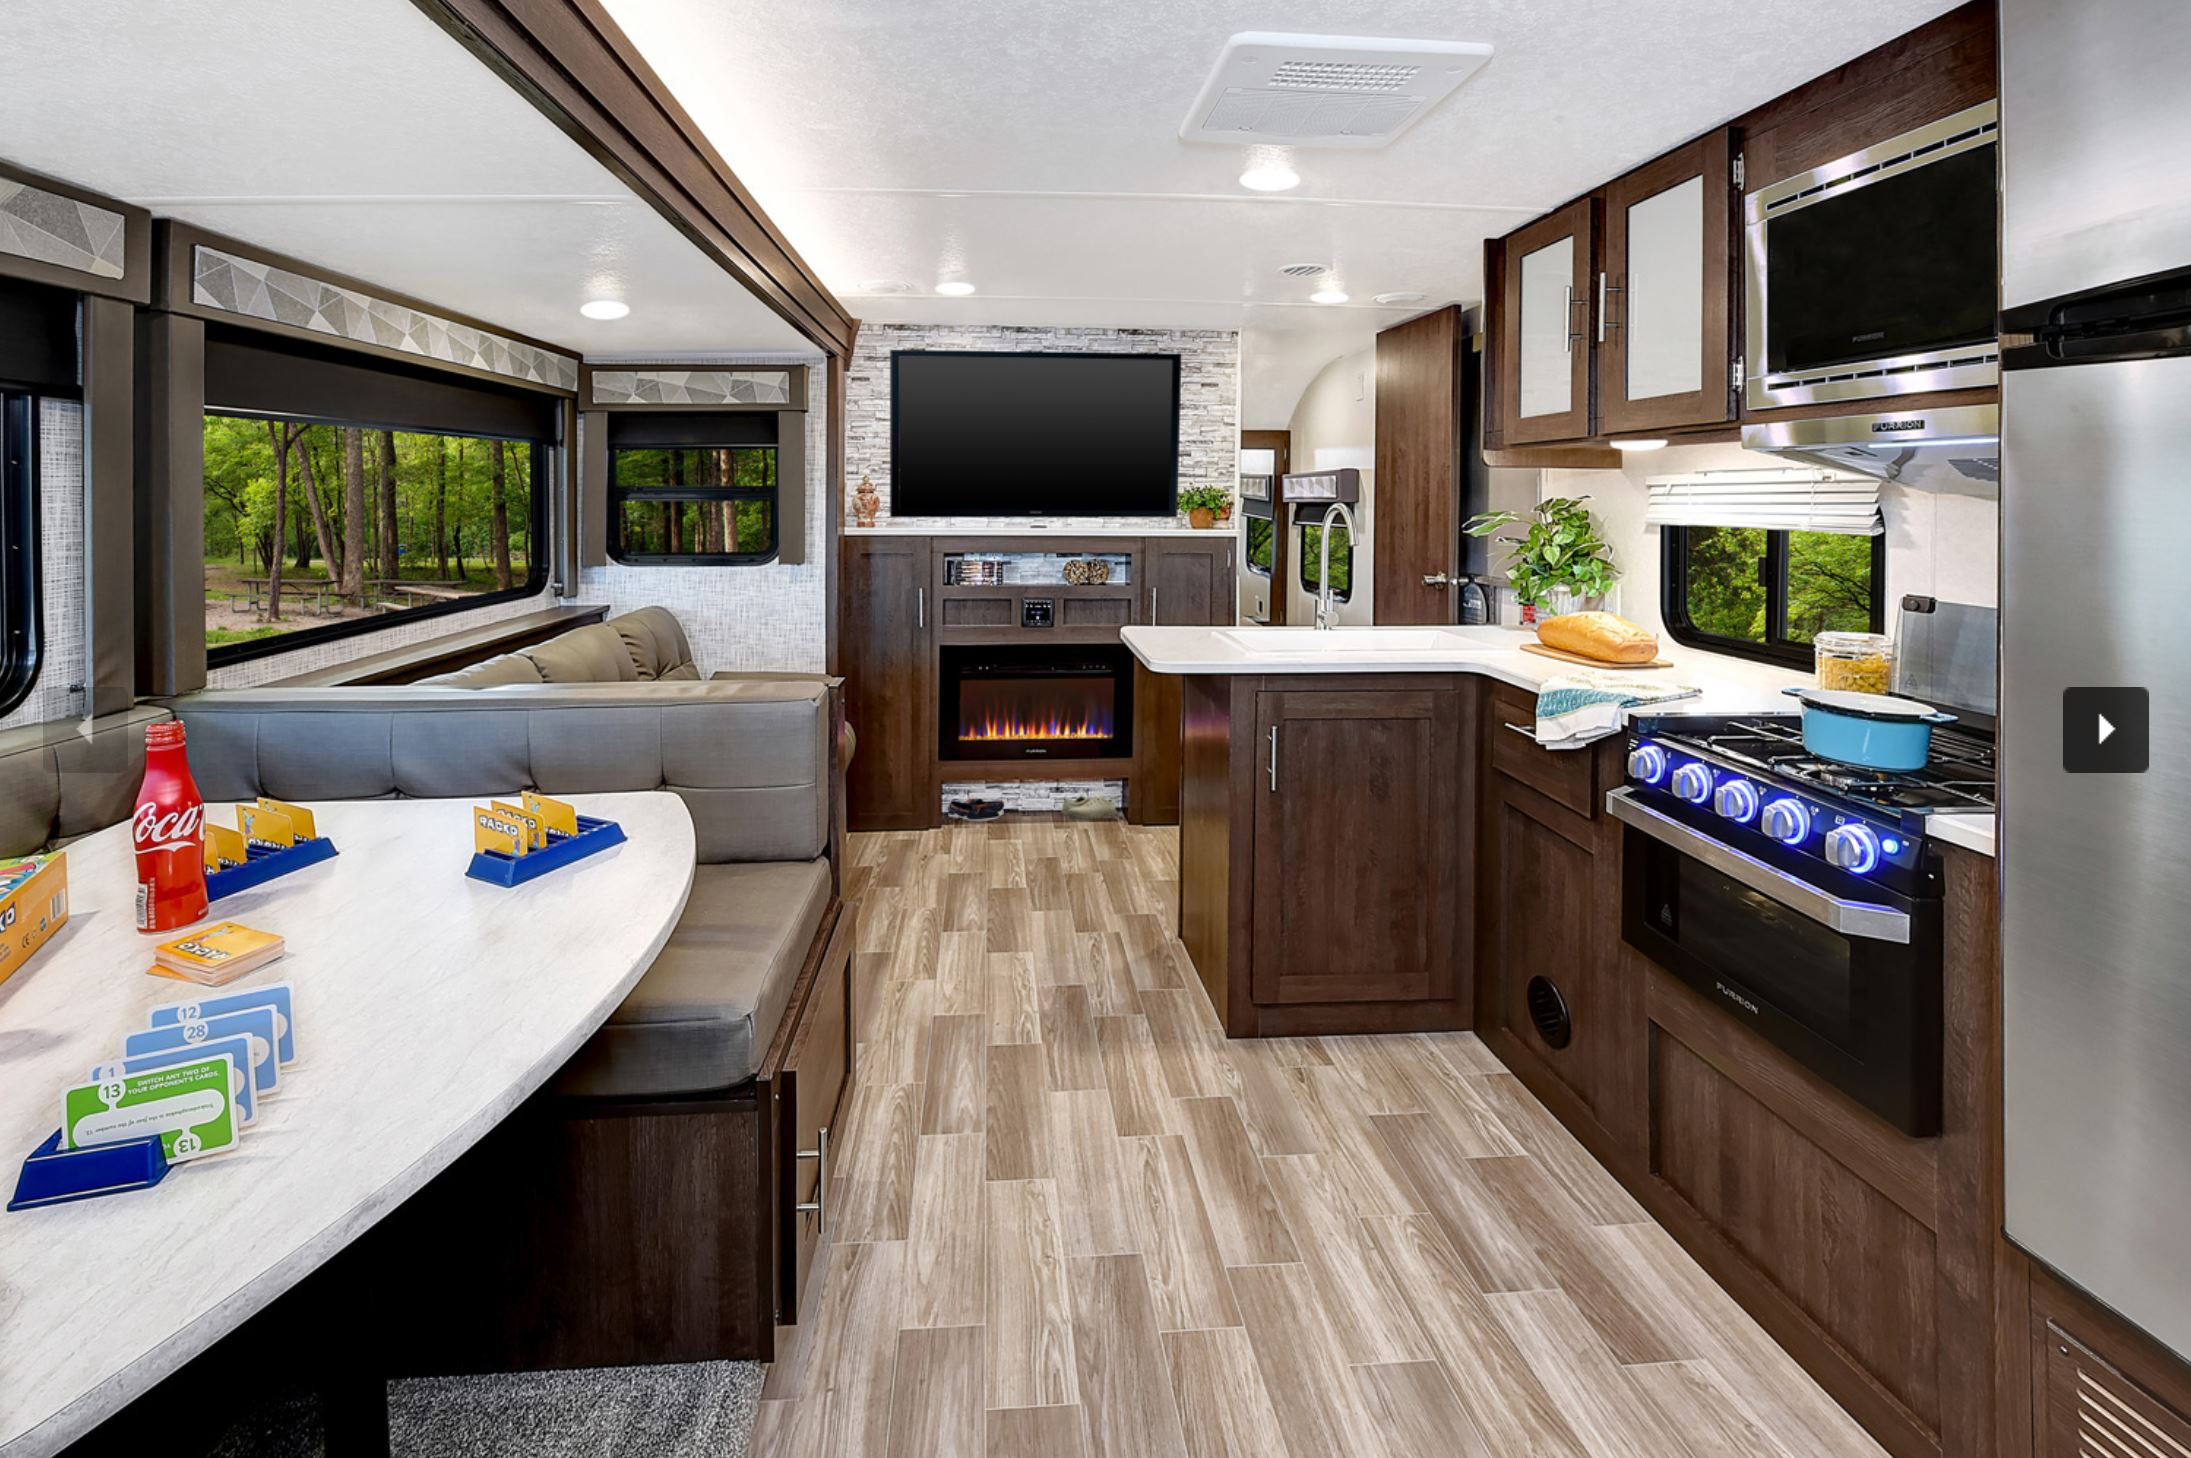 29' Salem Trailer with Slide-out Kitchen & Dinette View